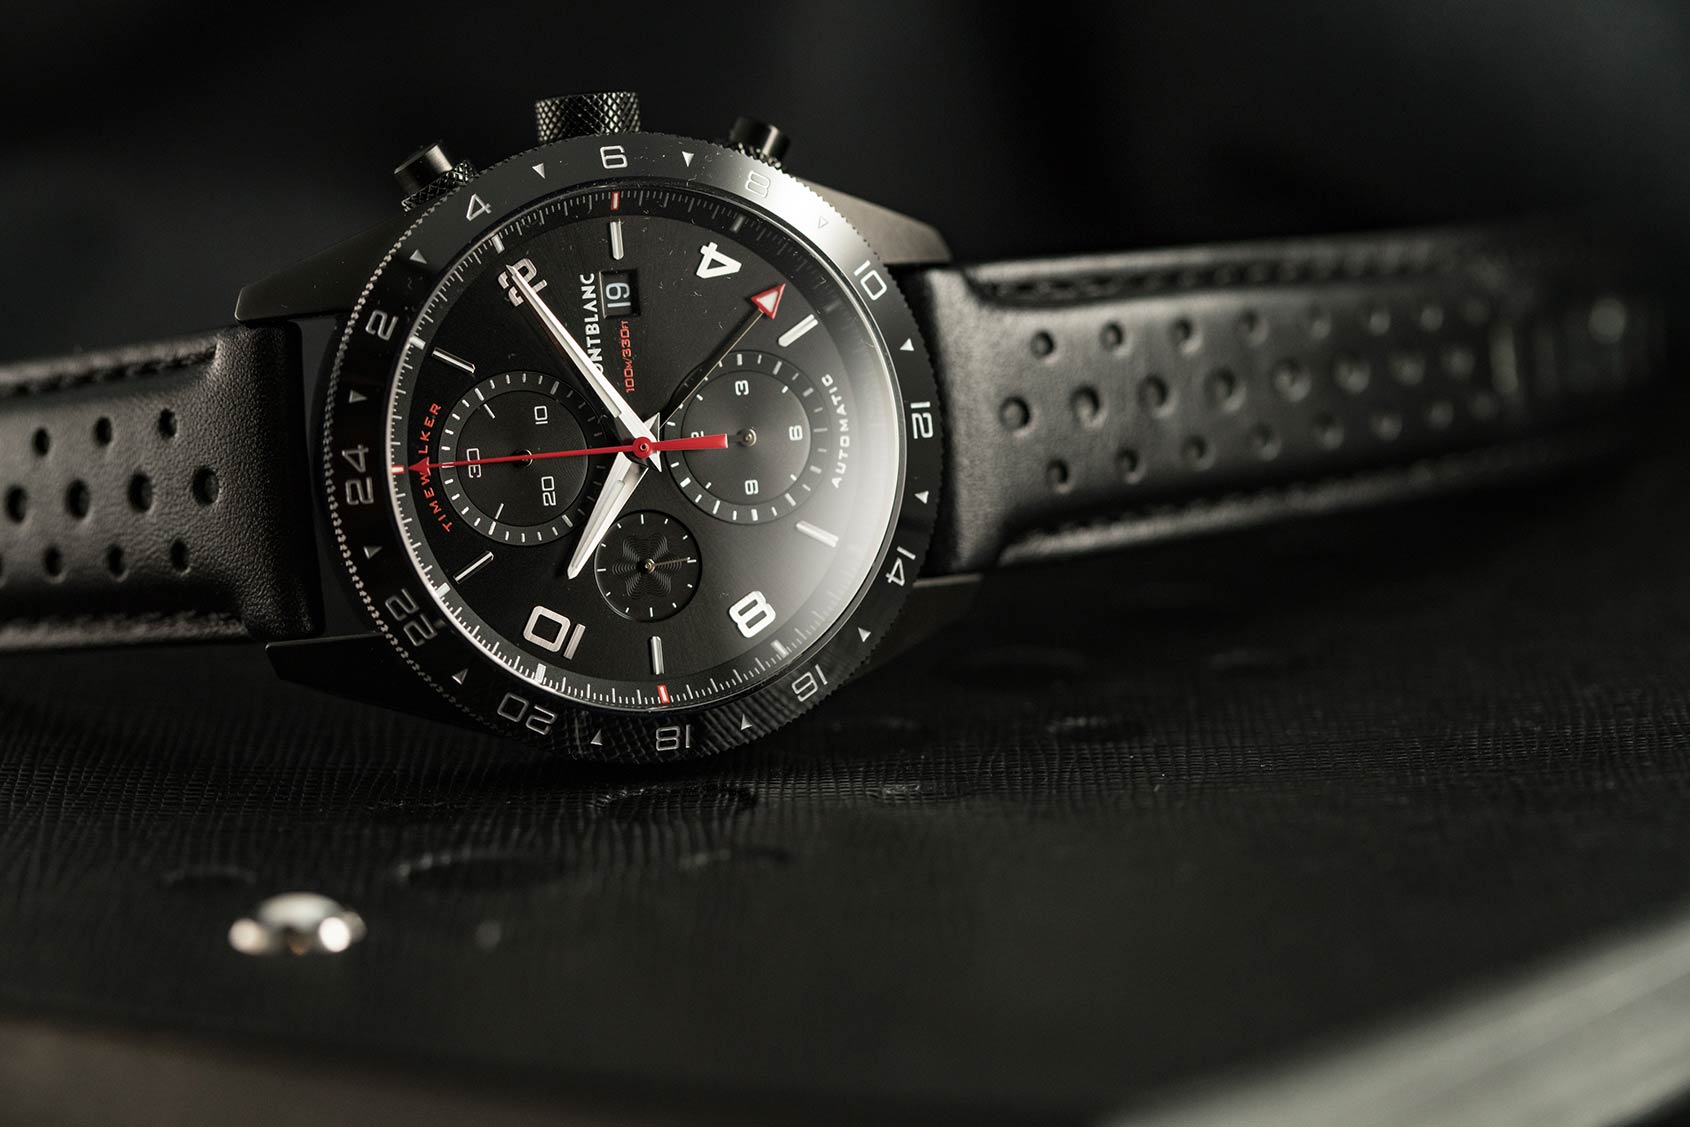 INTRODUCING: A racy traveller – the Montblanc TimeWalker Chronograph UTC